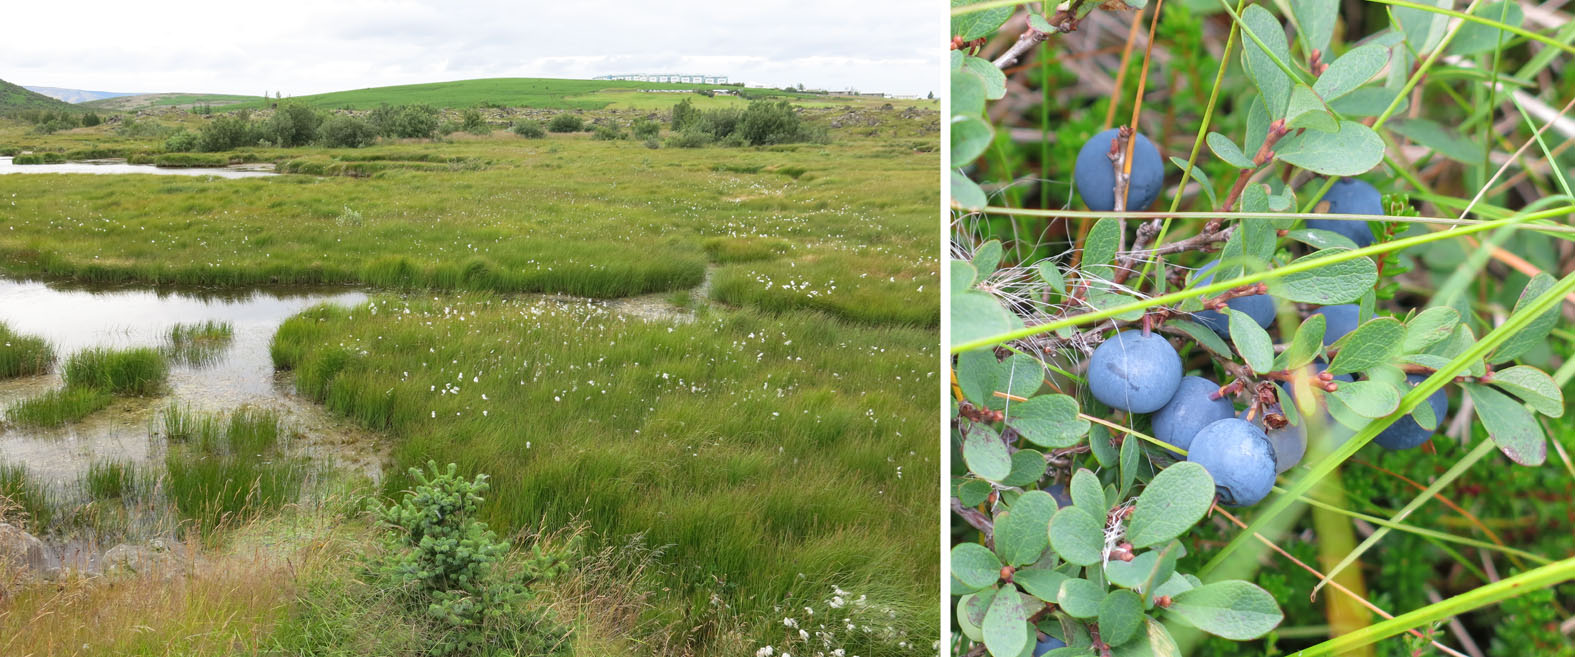 Boggy meadow with cotton grass (left) and the blue berry bush (right) near Lake Urridavatn in Iceland